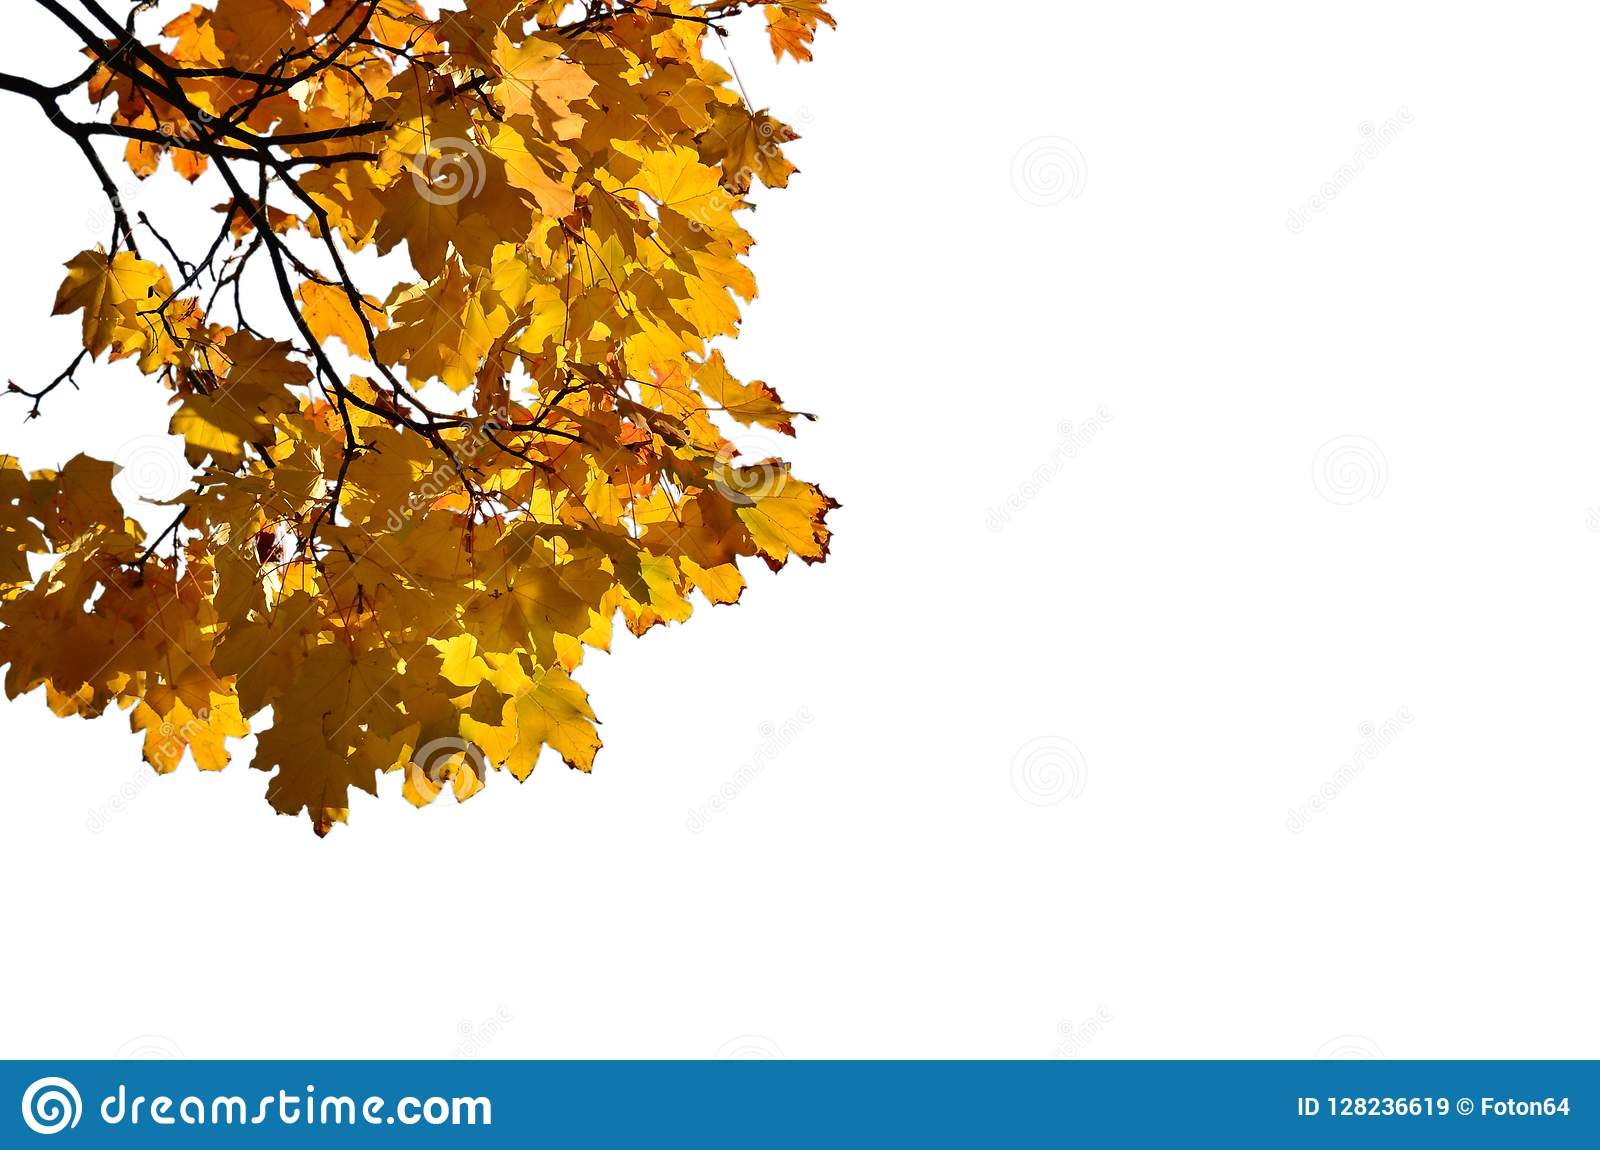 Maple branch with yellow leaves isolated. Autumn colors.